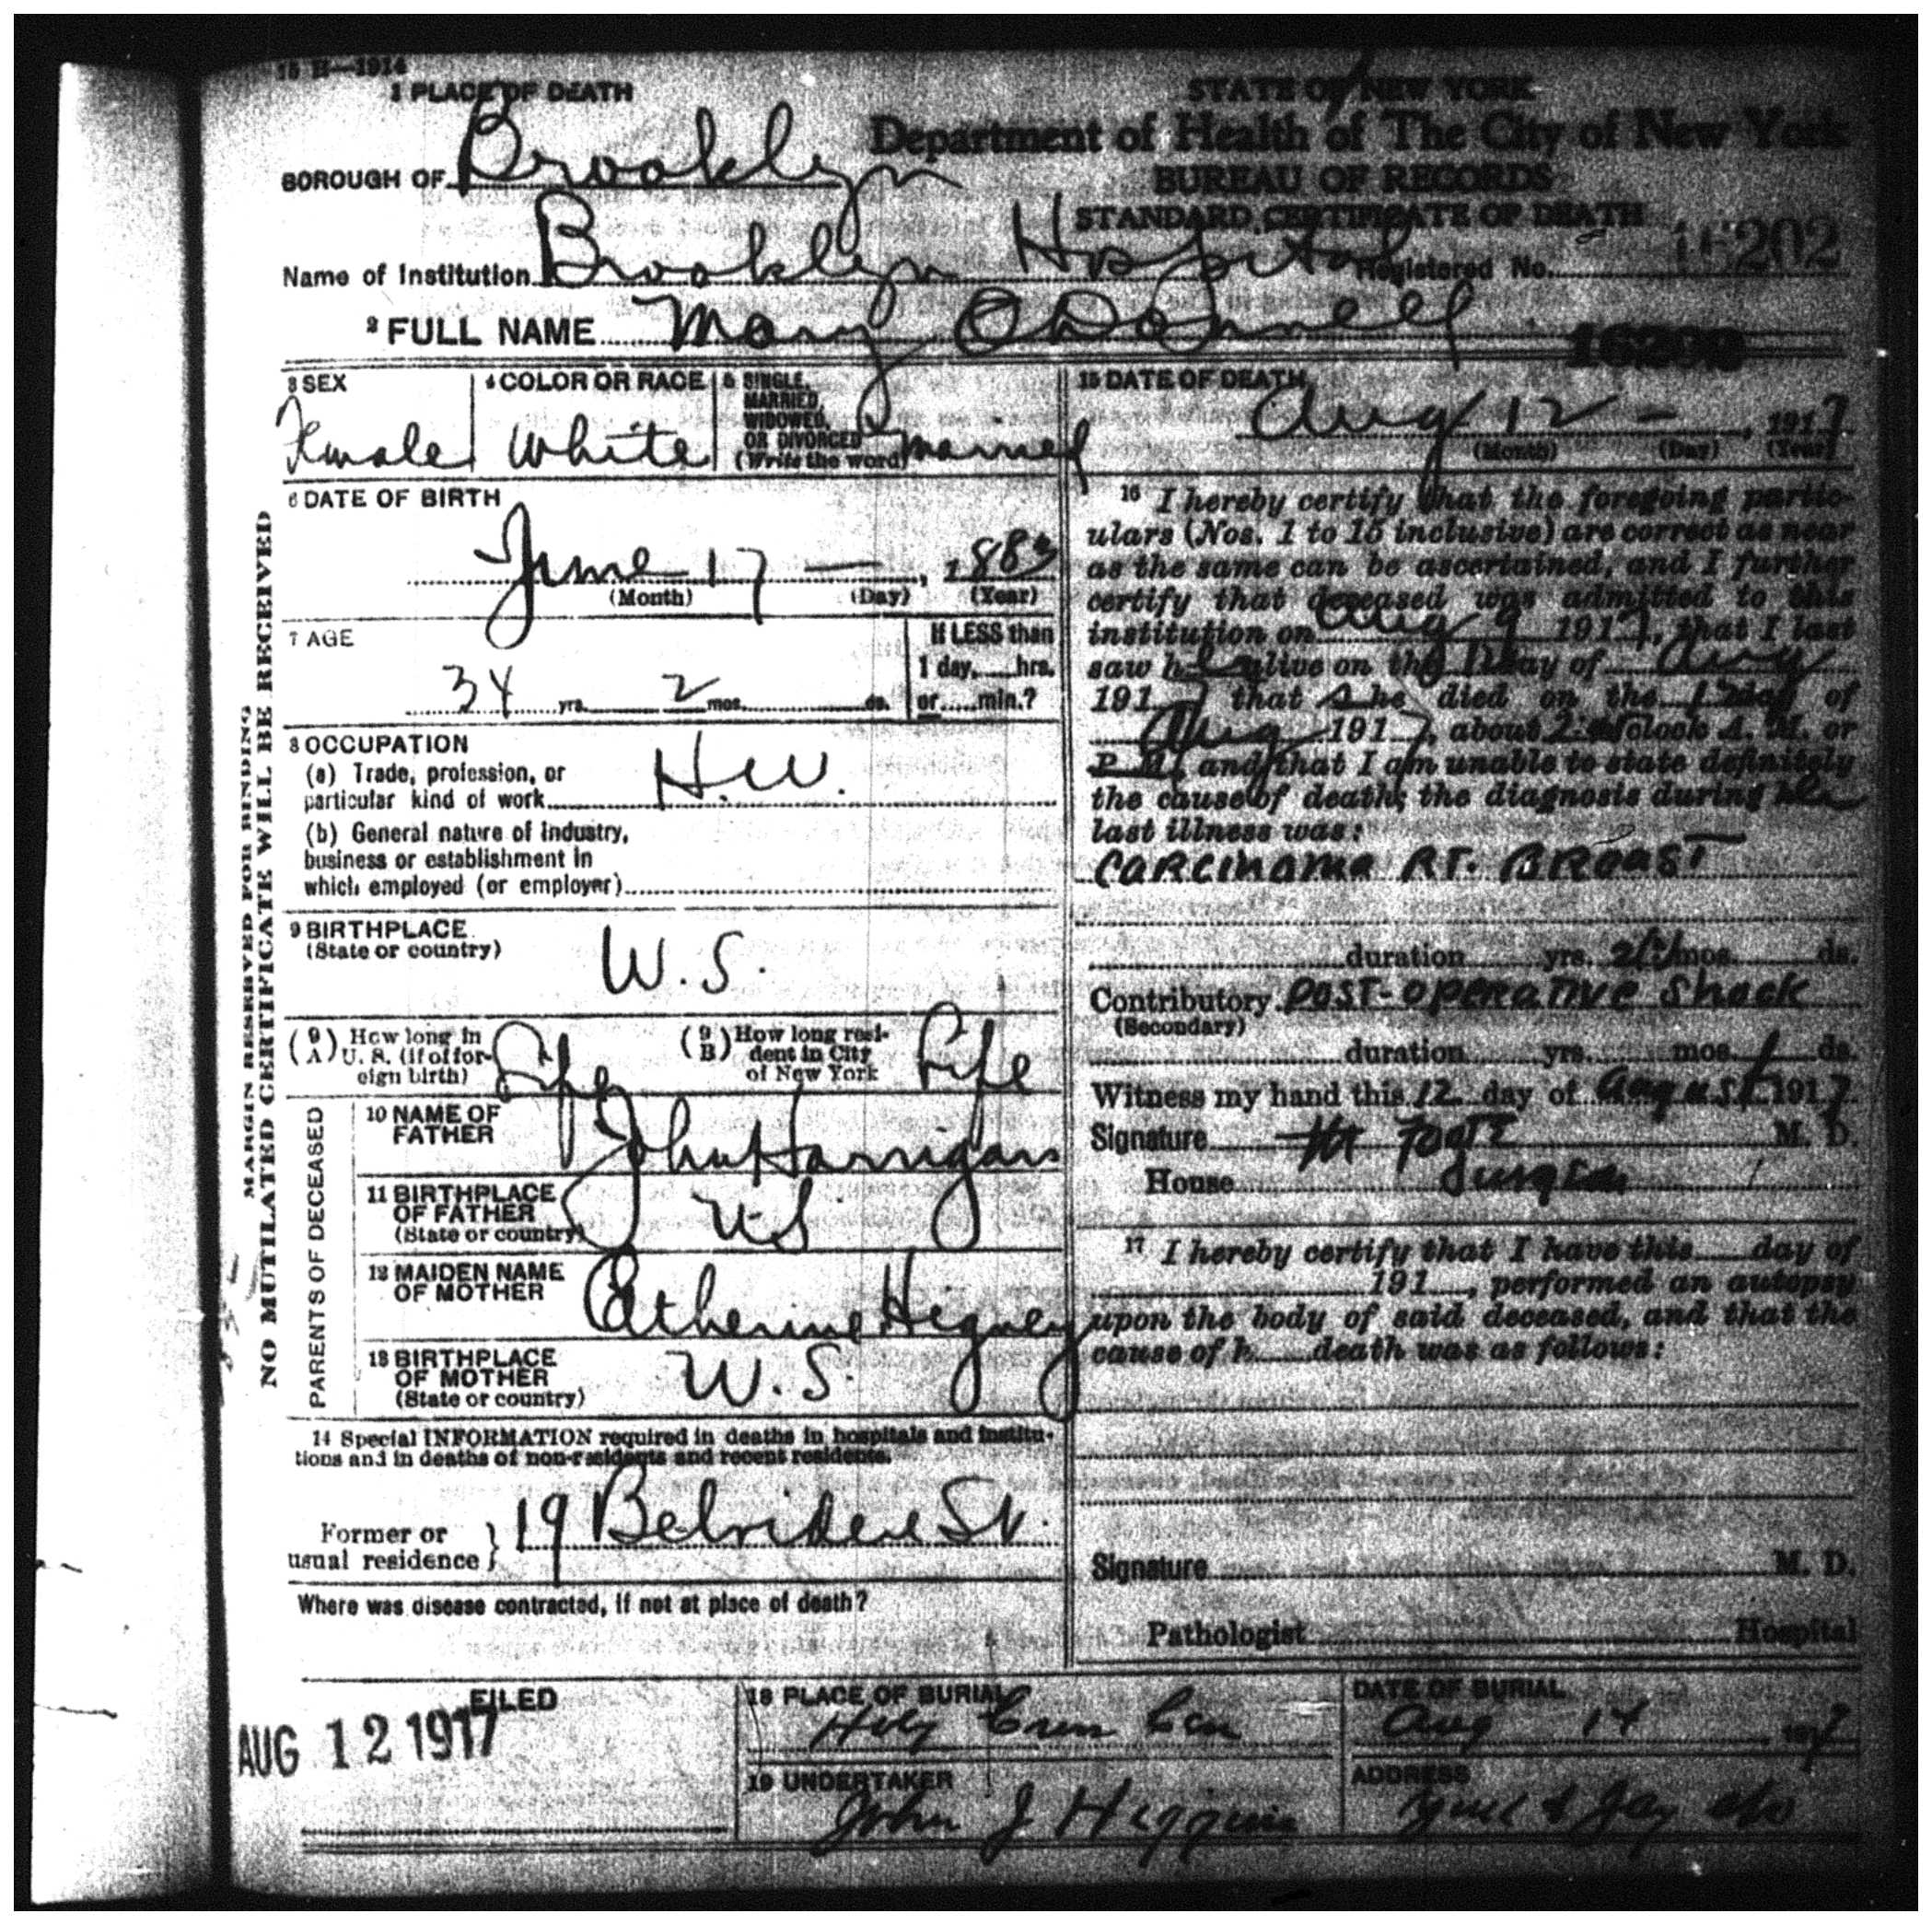 Mary Harrigan Odonnell Death Certificate Irish History And Genealogy